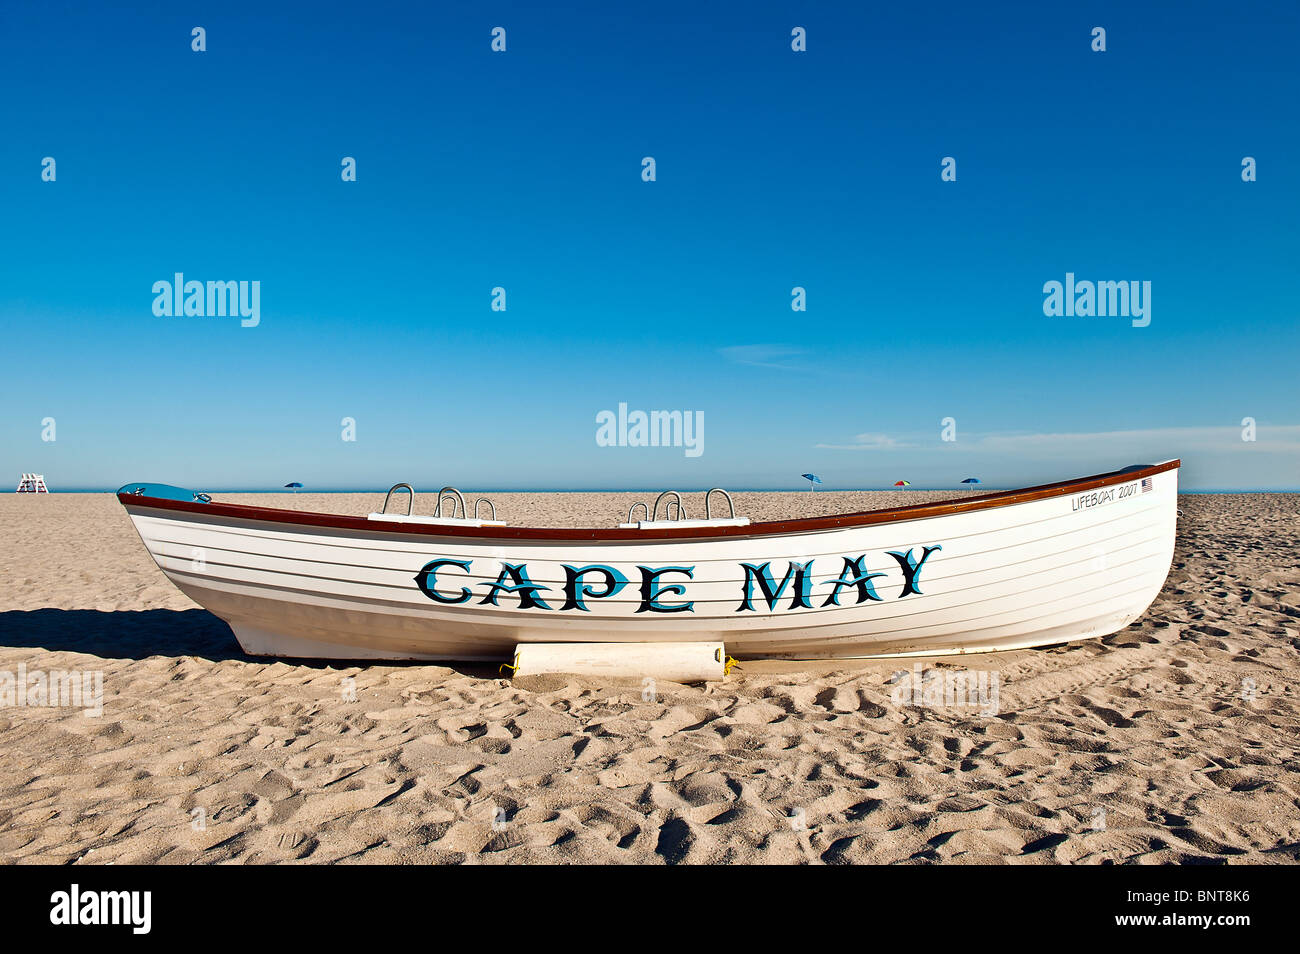 Lifeguard resue boat, Cape May, New Jersey, USA - Stock Image